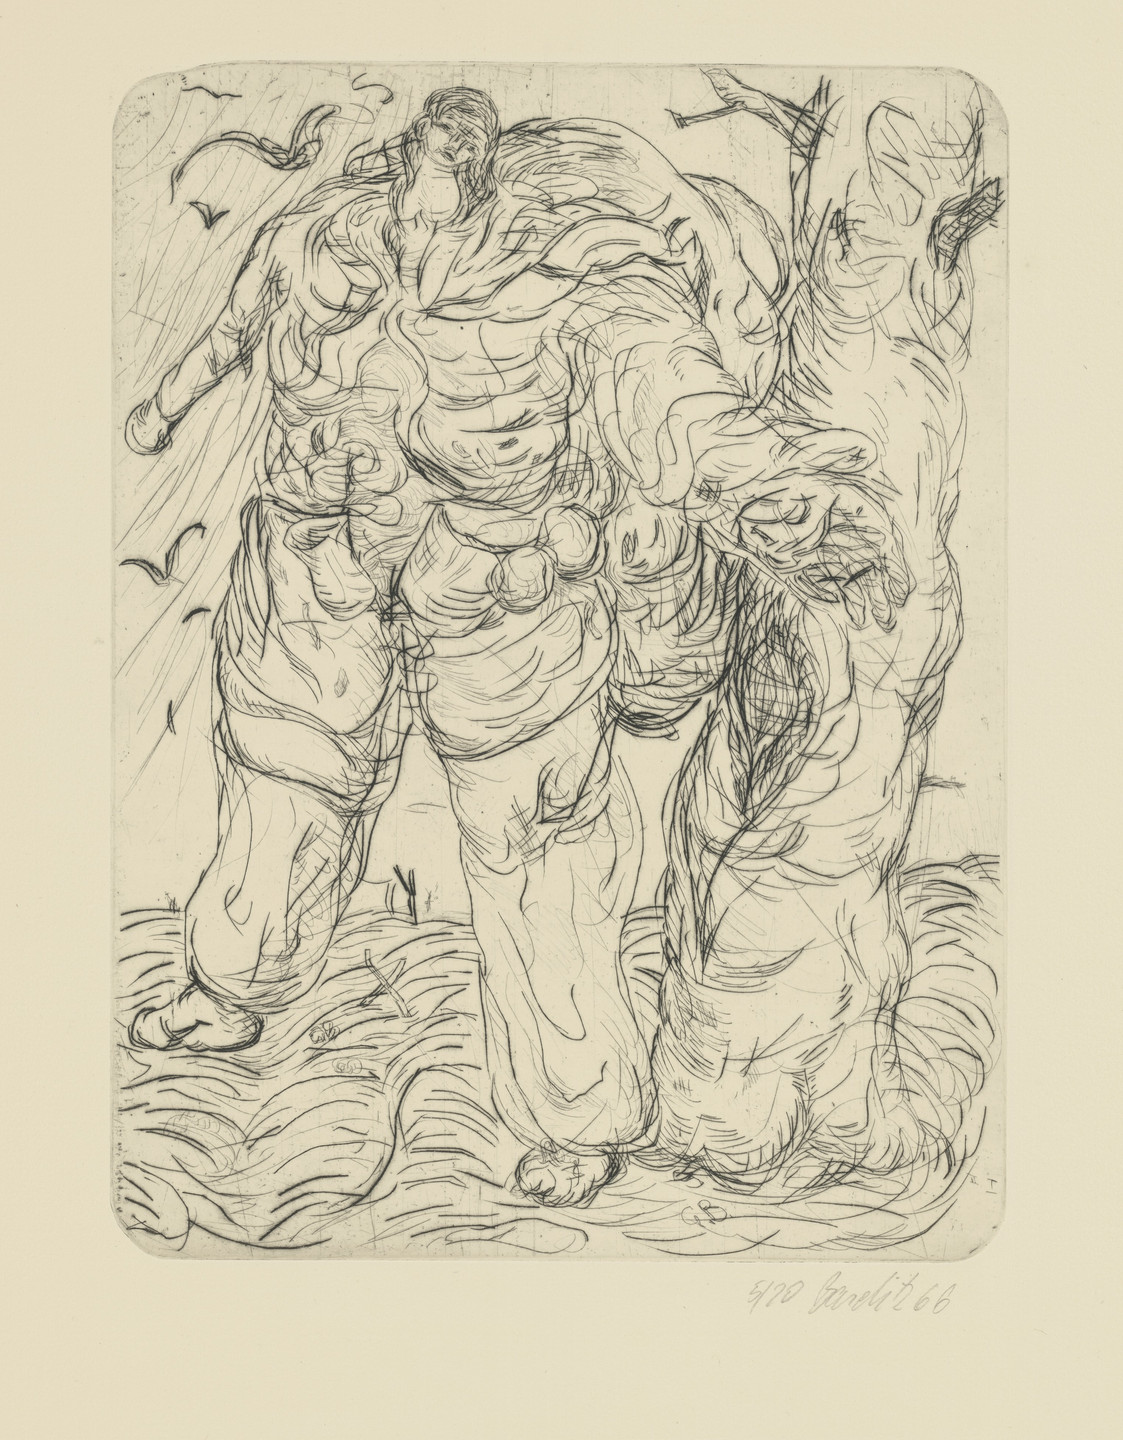 Georg Baselitz. Type / Green One at the Tree (Typ / Grüner am Baum). 1965–66, published 1974